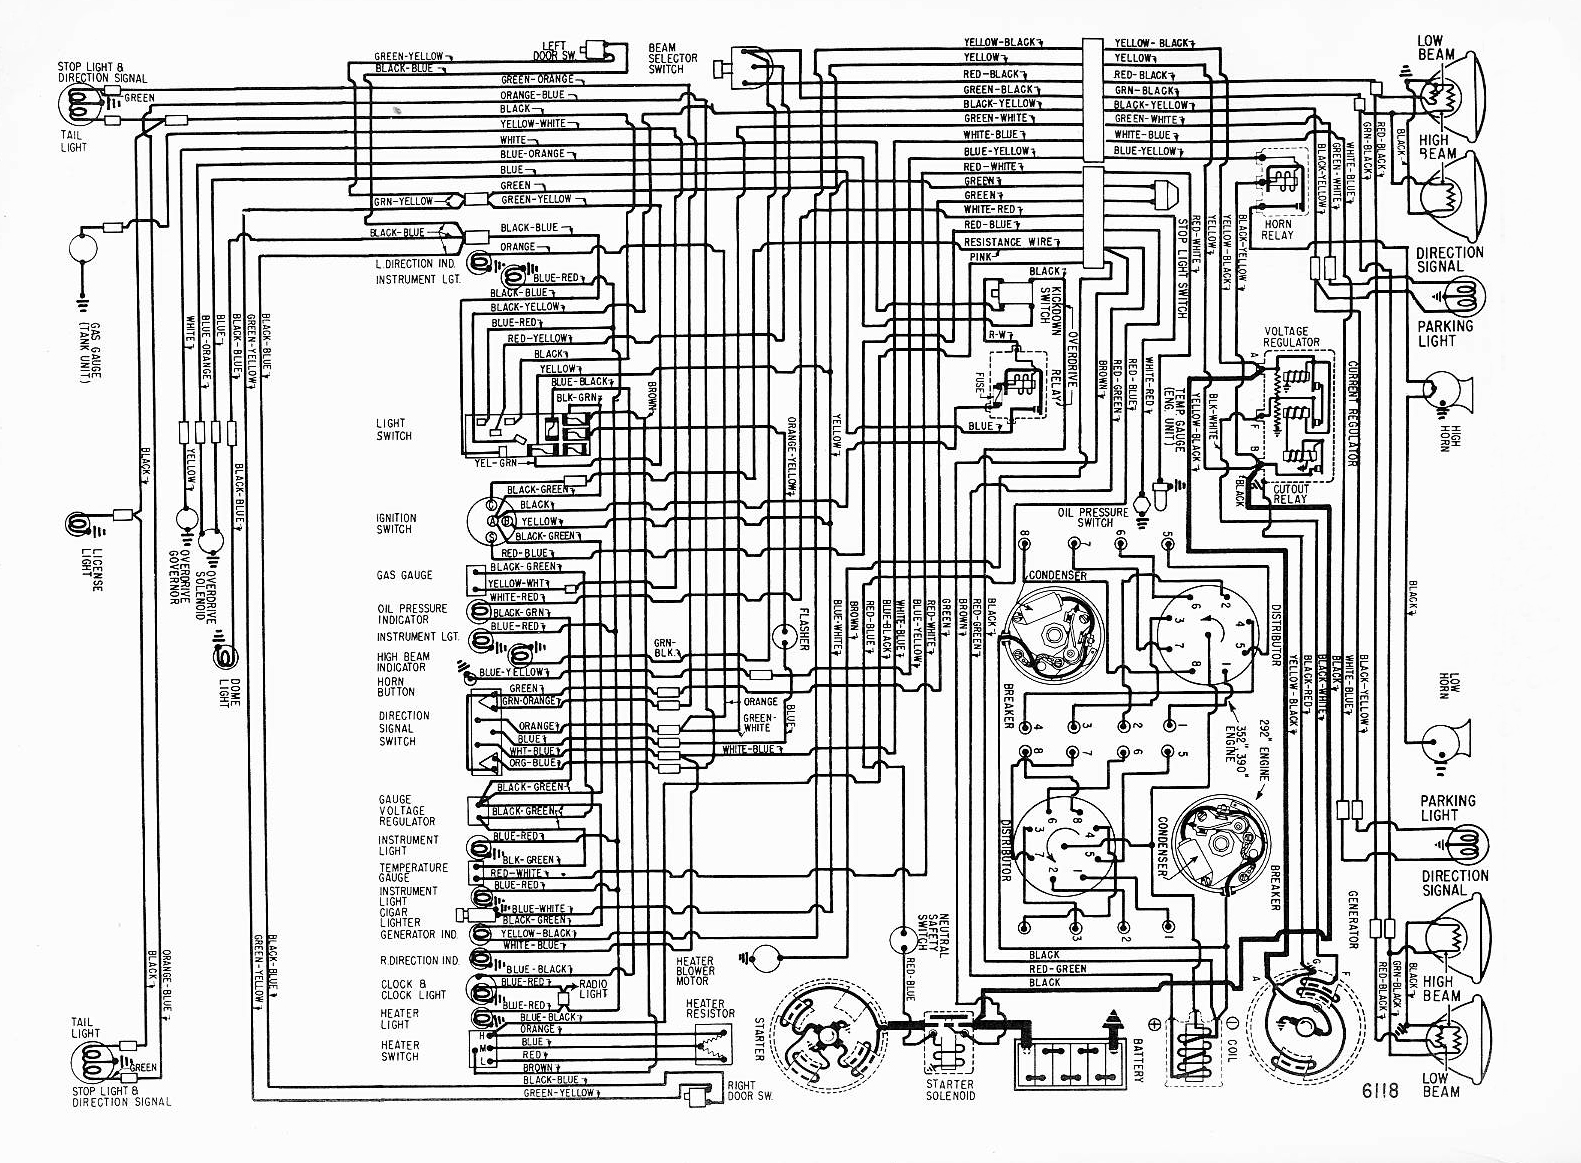 490221 keen corvette parts diagrams Single Phase Compressor Wiring Schematics at creativeand.co